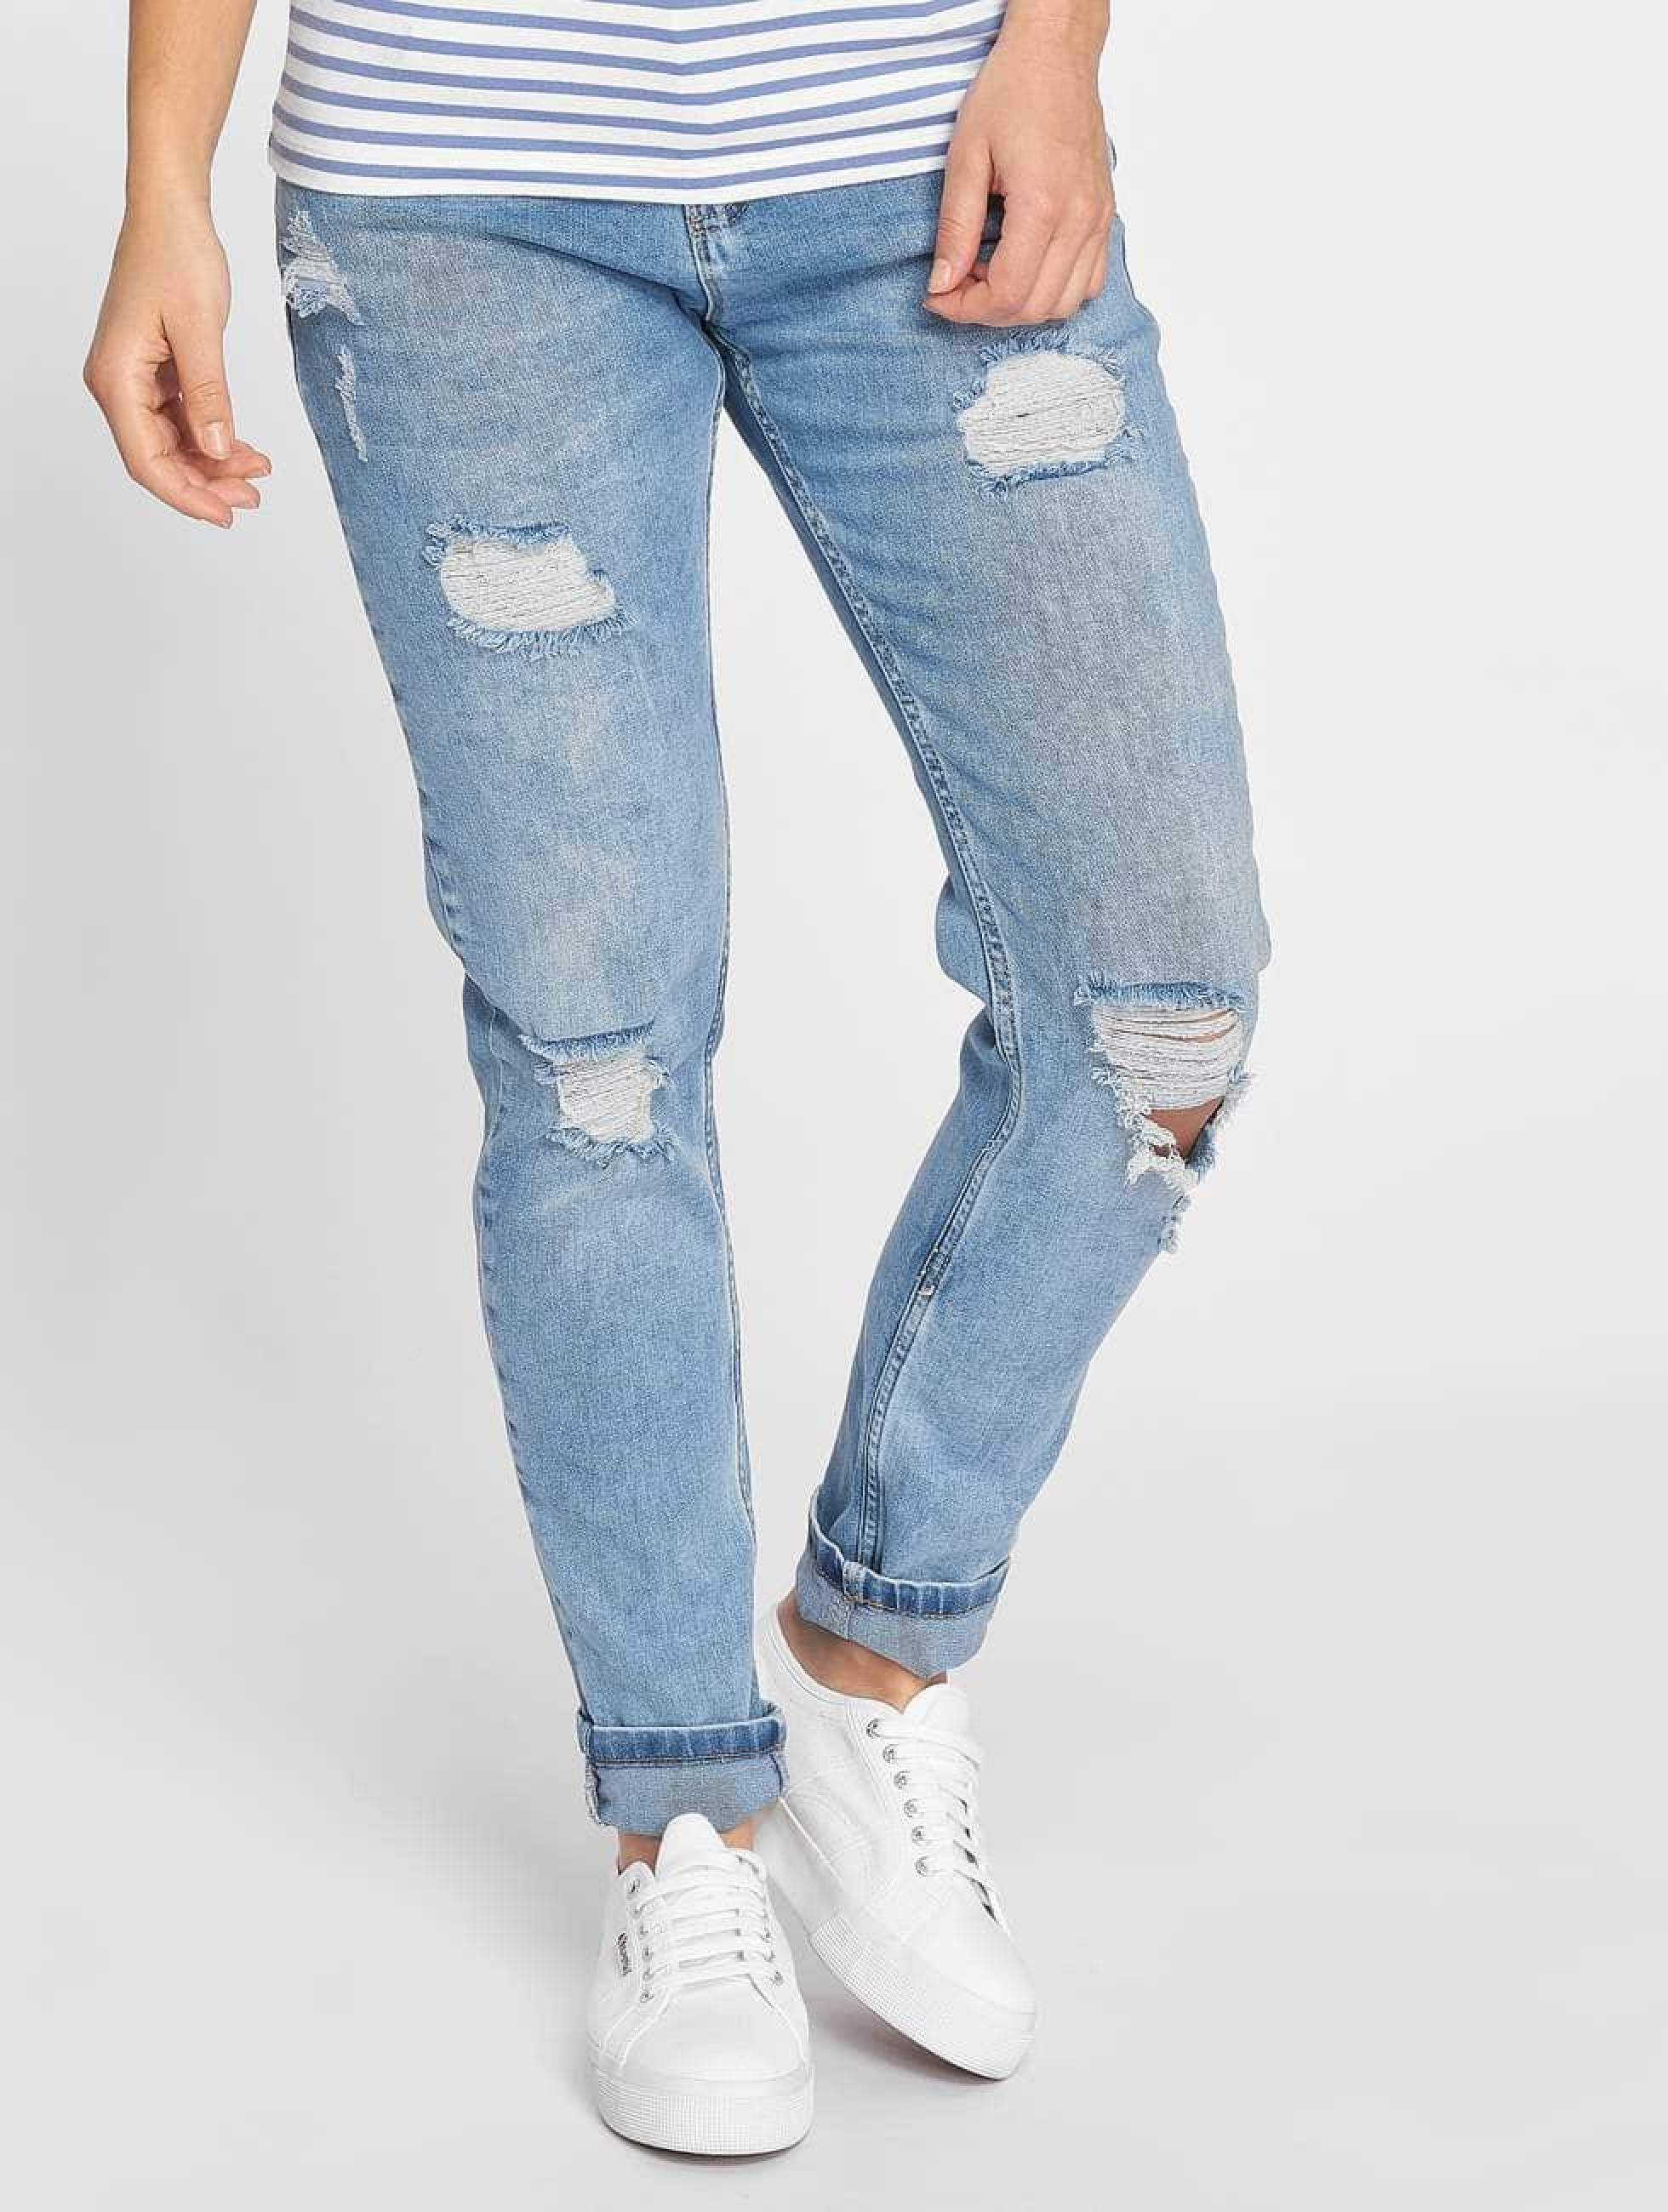 Just Rhyse / Boyfriend Jeans Bubbles in blue L